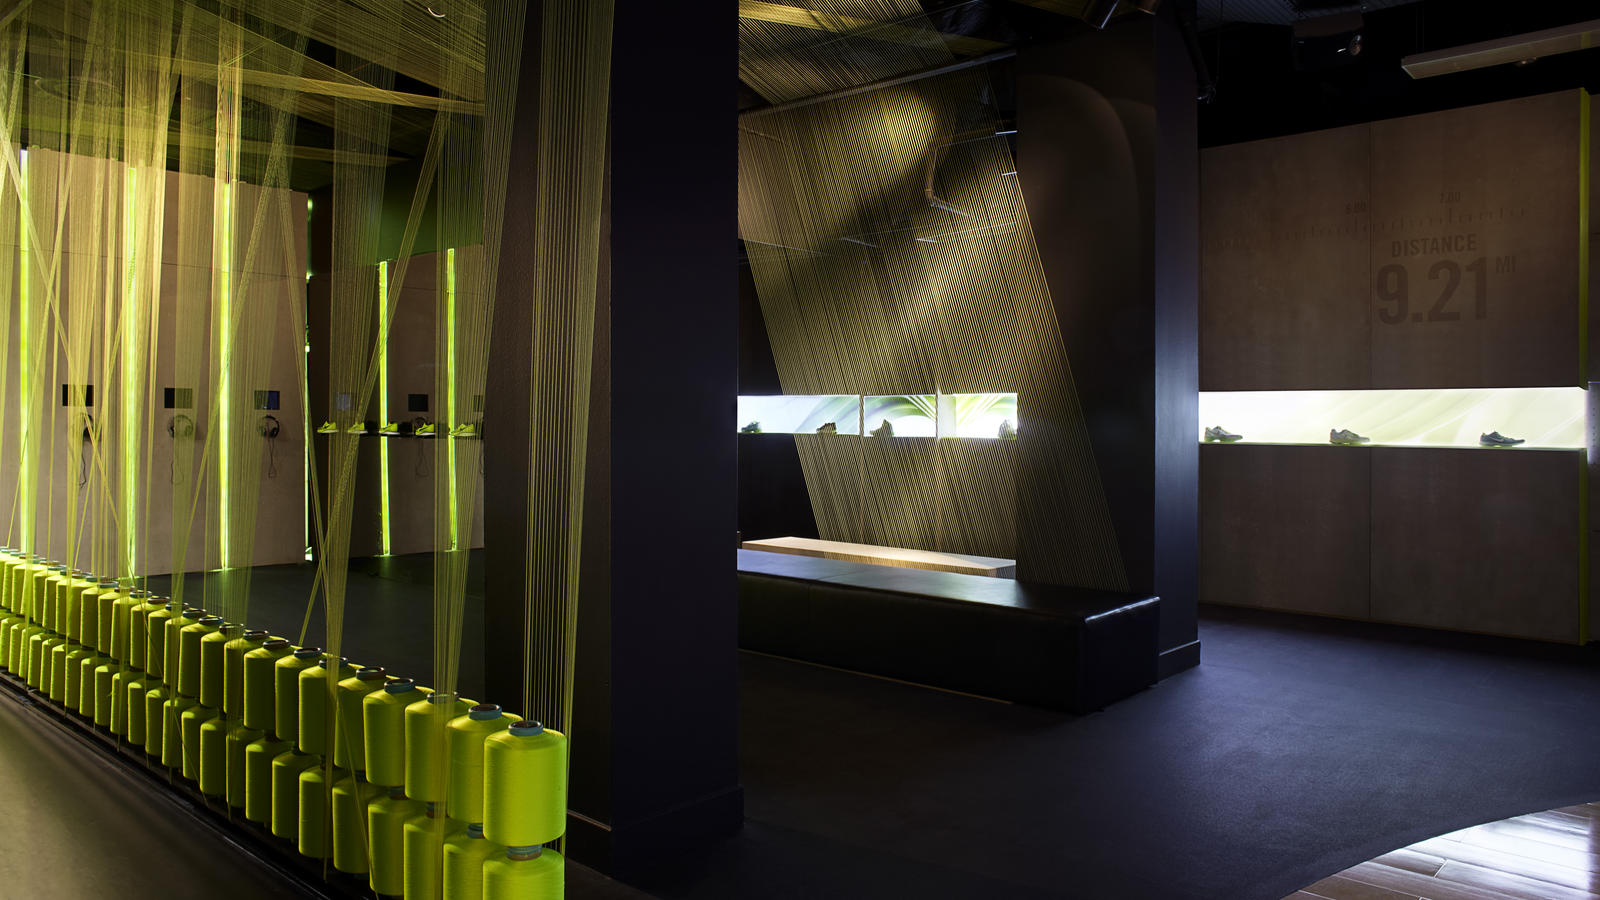 Introducing the NIKE House of Innovation at Selfridges - Nike News ed8c1cce7